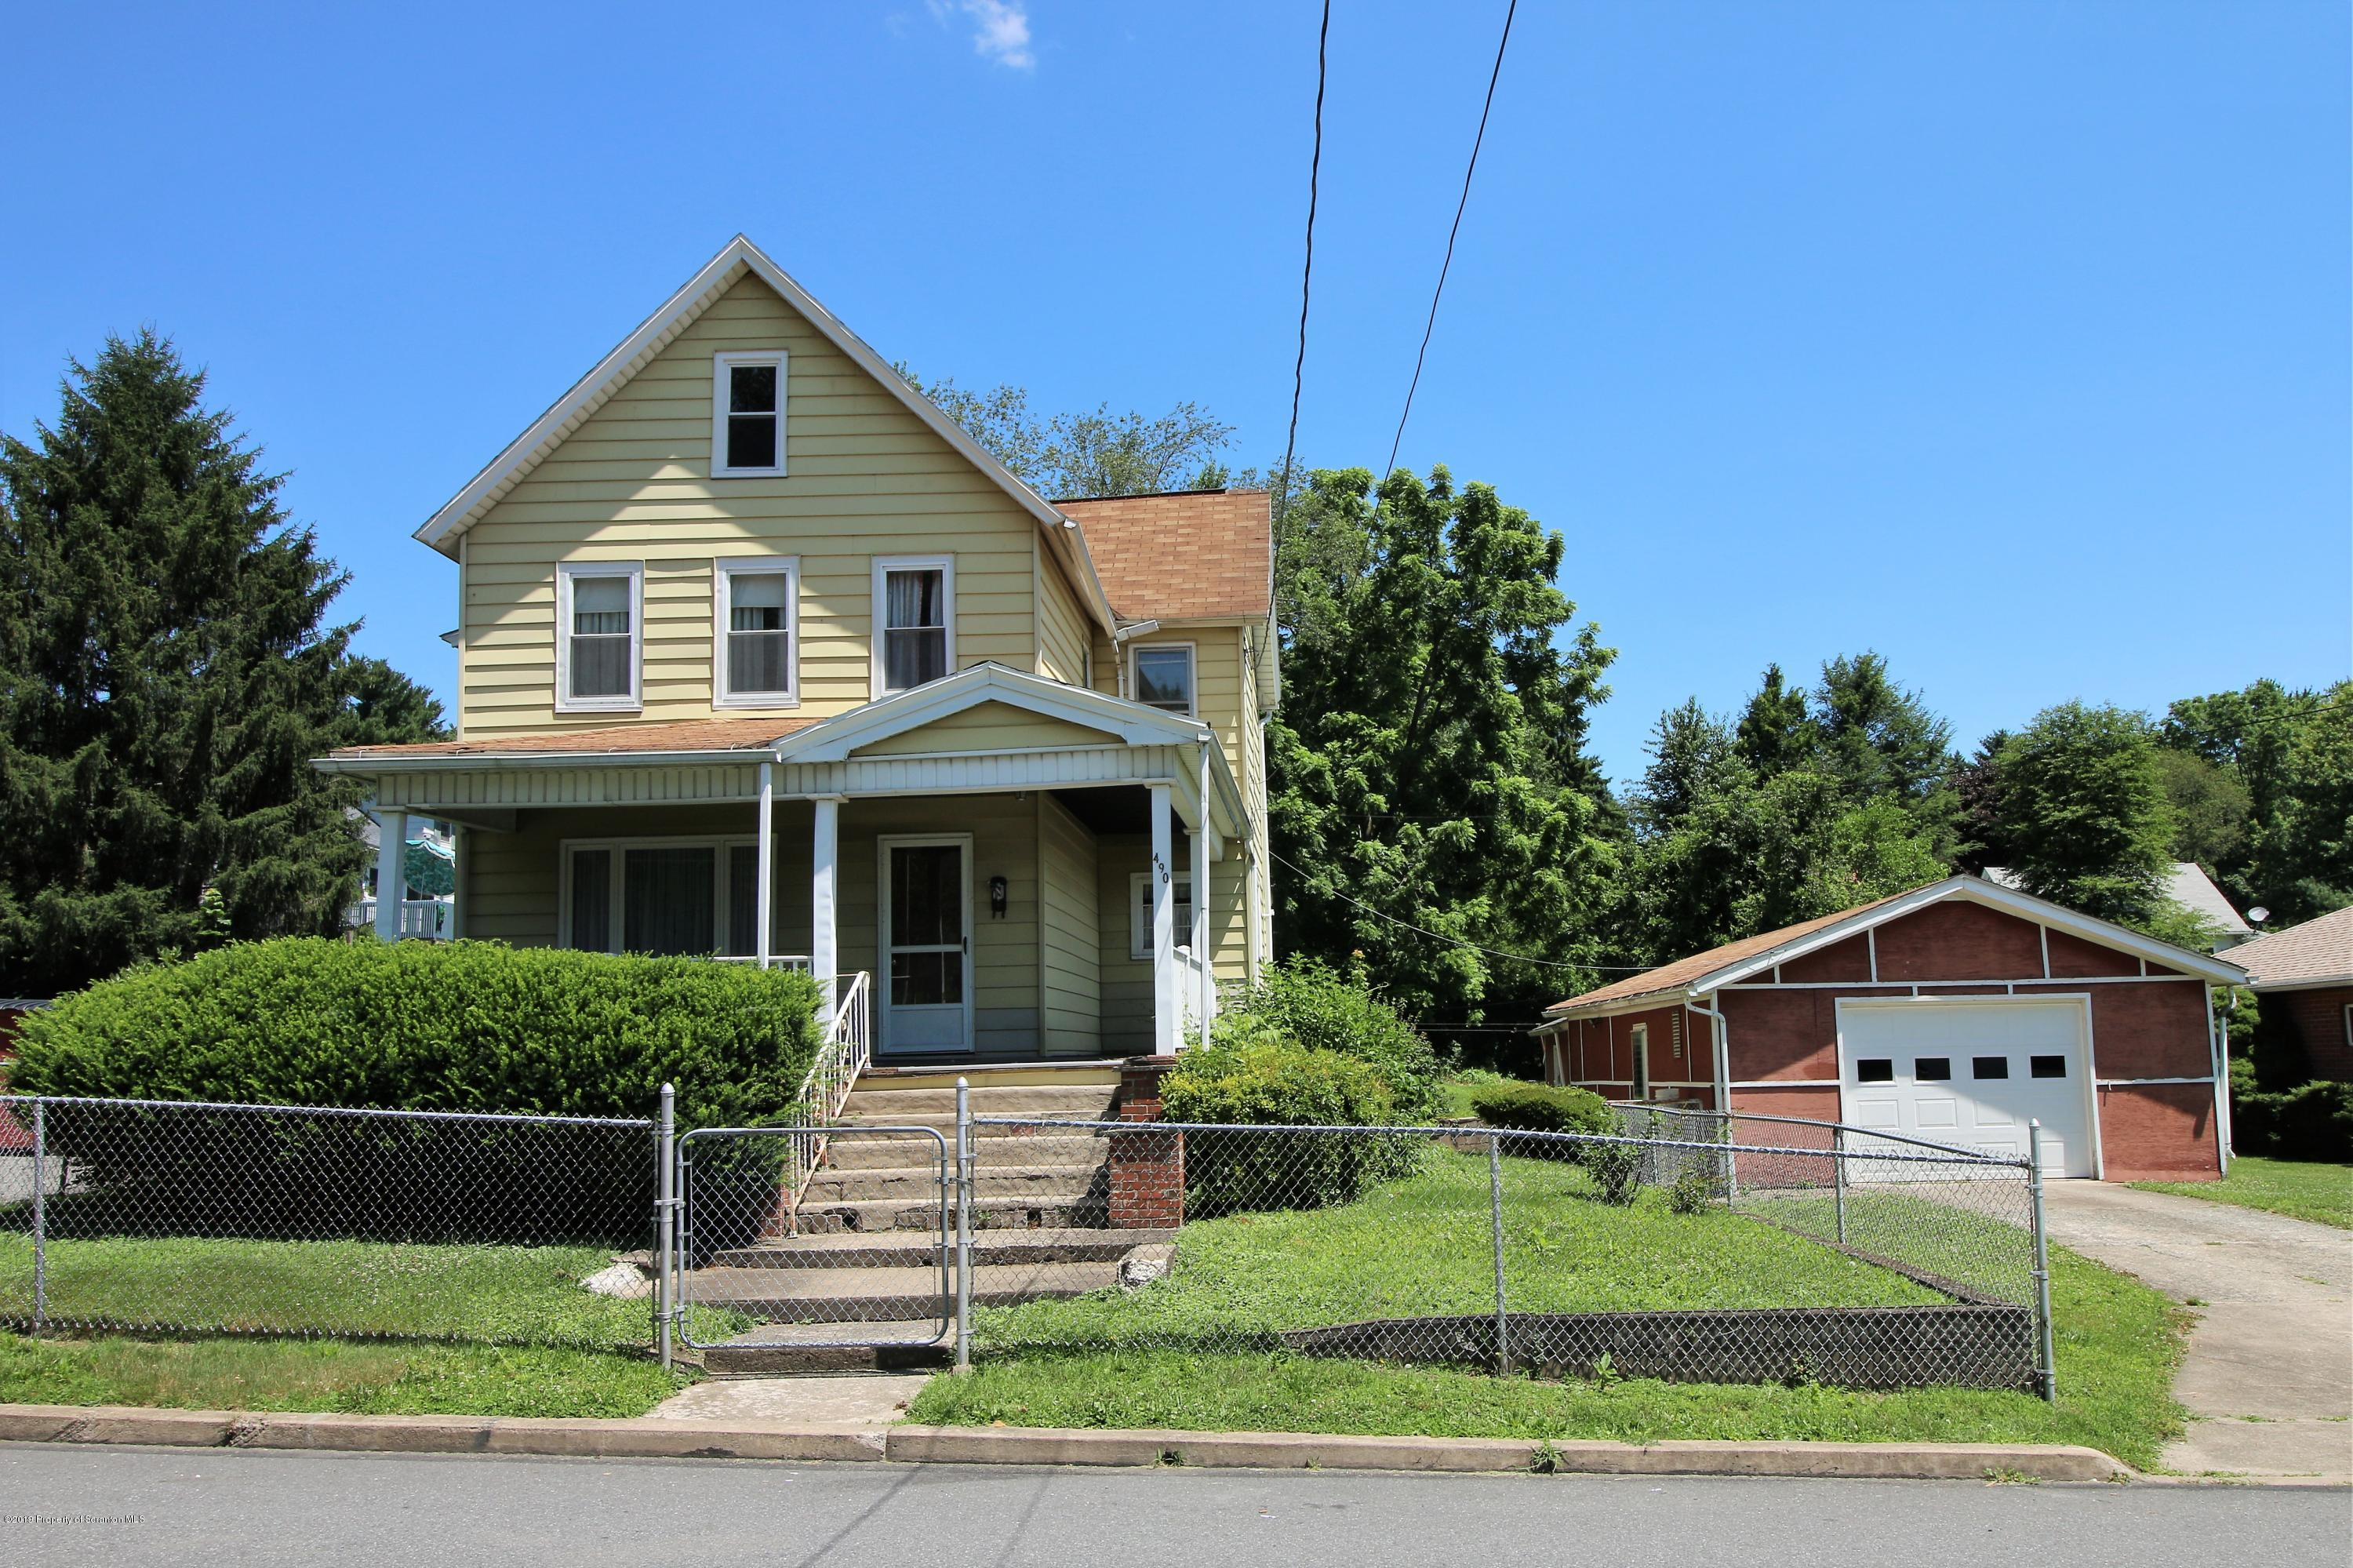 490 Mary St, Scranton, Pennsylvania 18508, 3 Bedrooms Bedrooms, 6 Rooms Rooms,1 BathroomBathrooms,Single Family,For Sale,Mary,19-3337